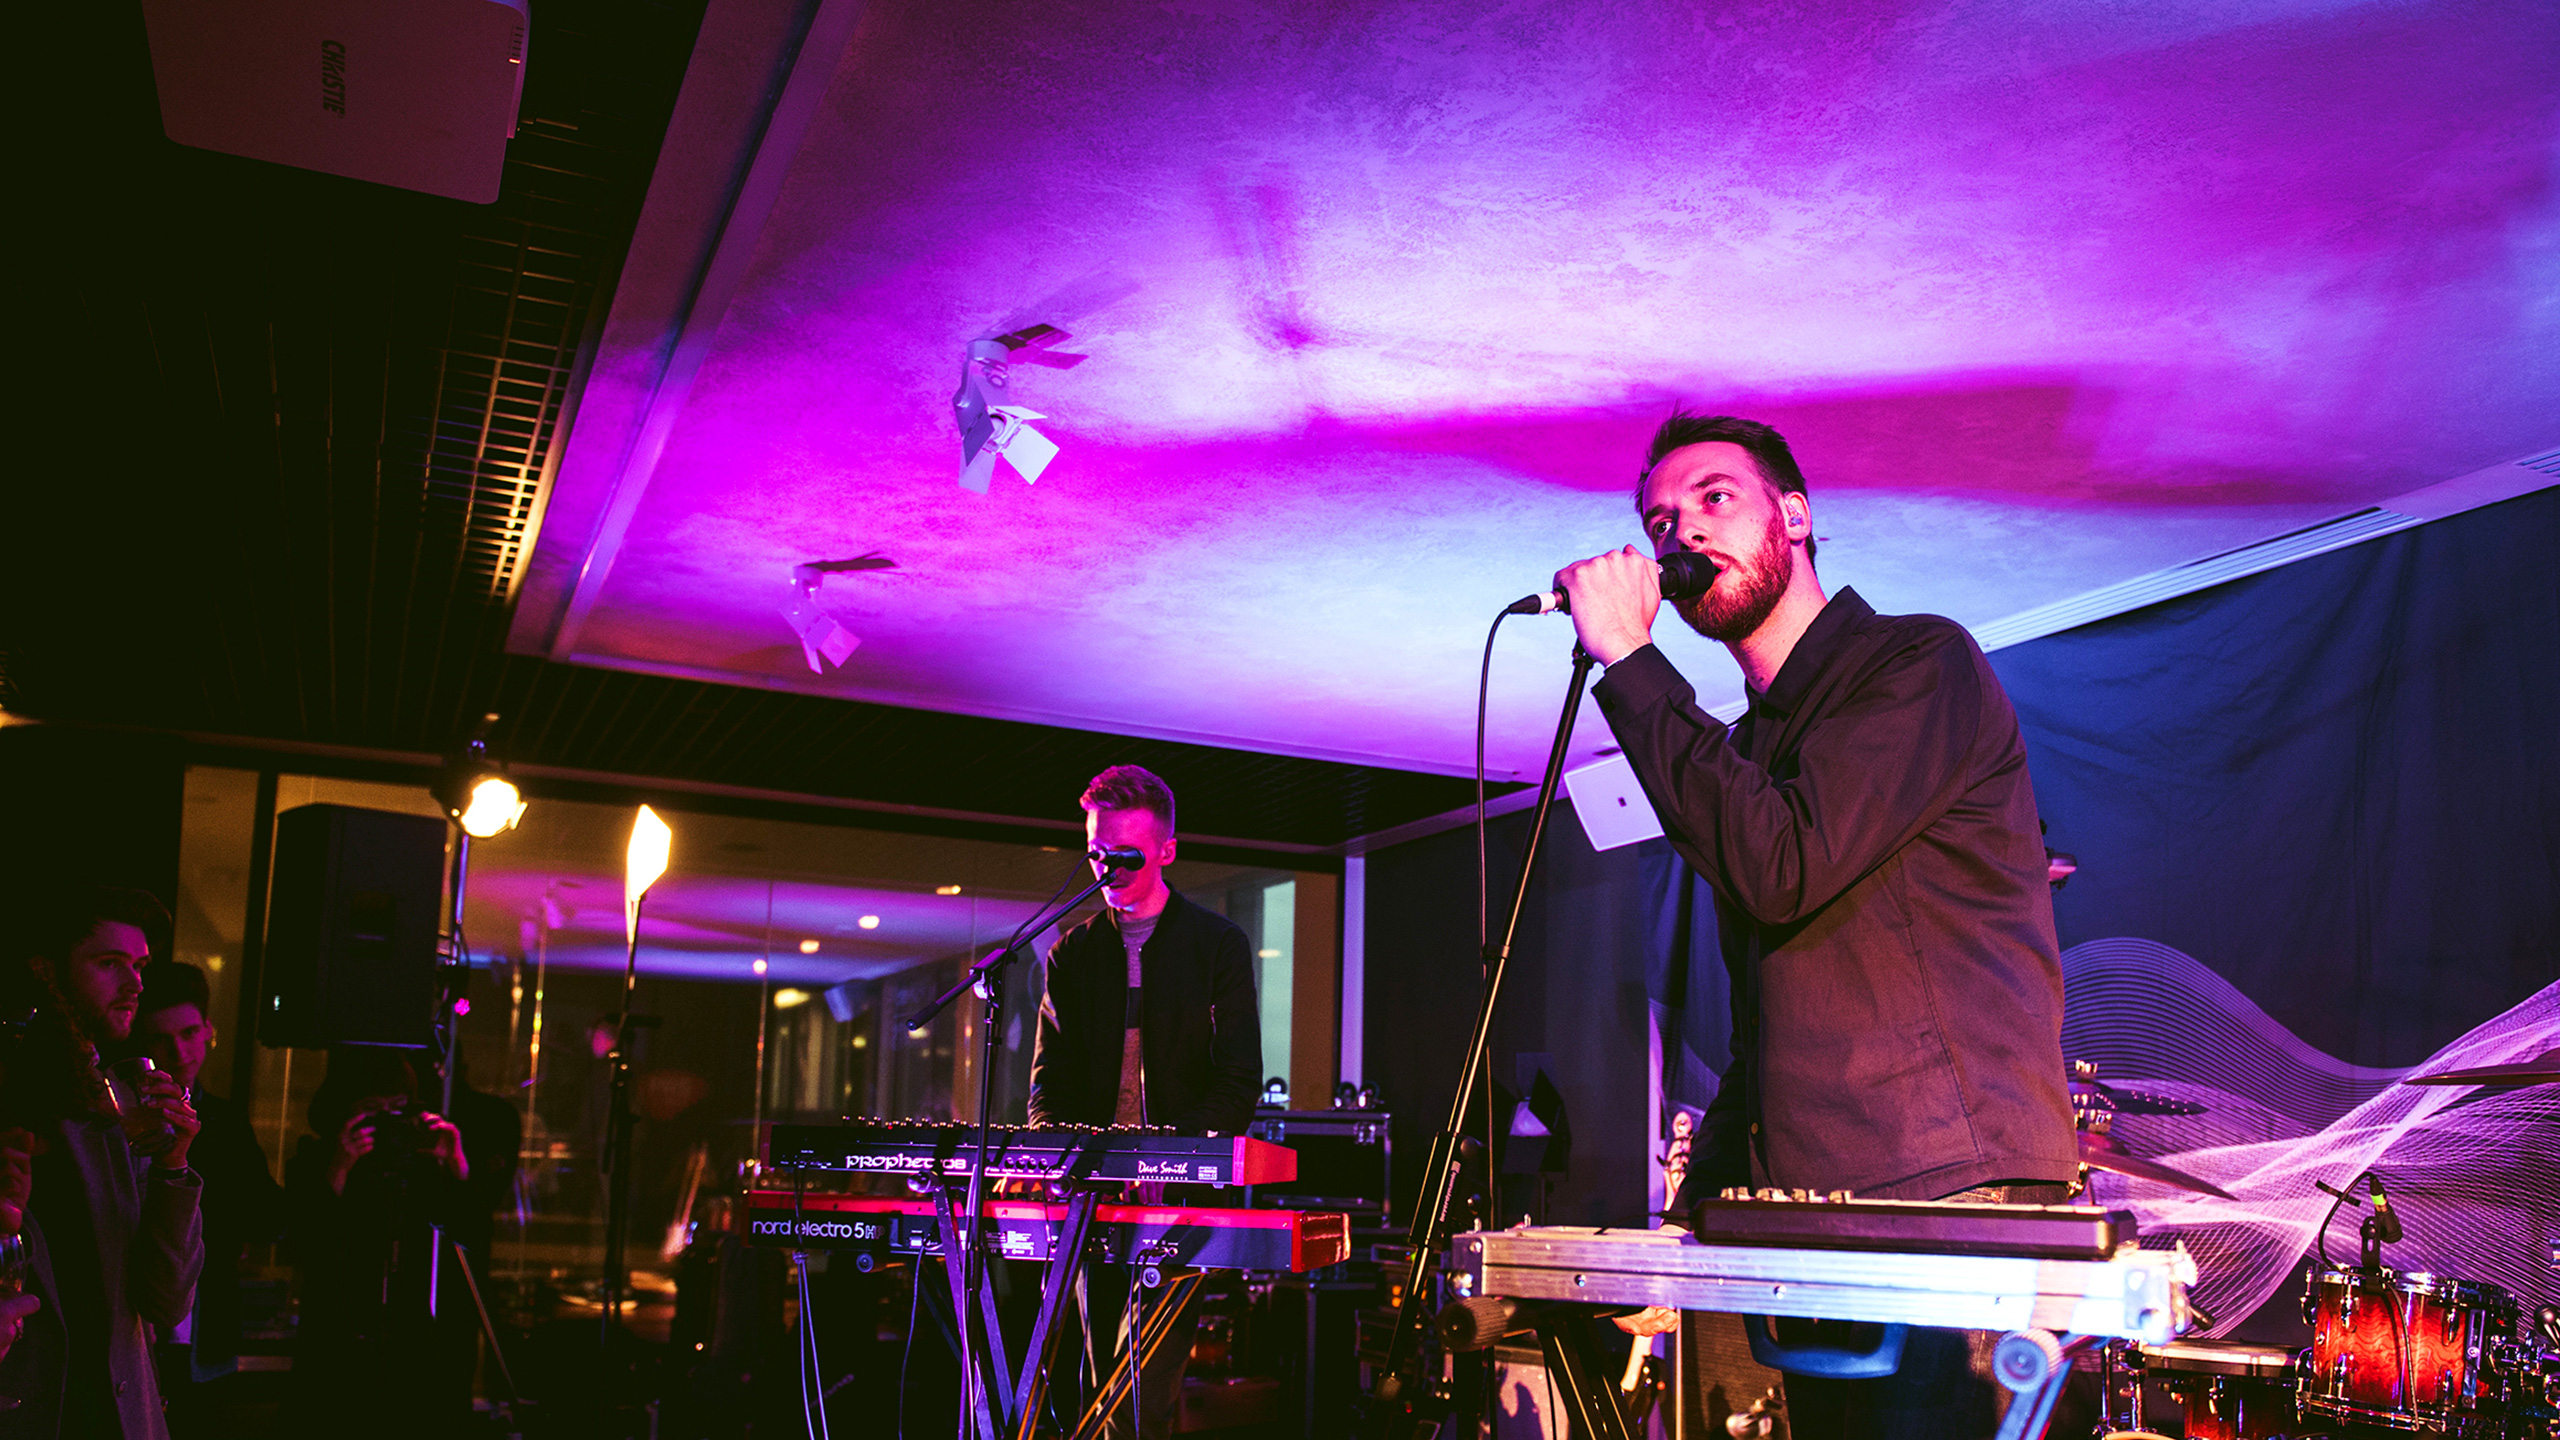 Honne performing with keyboards